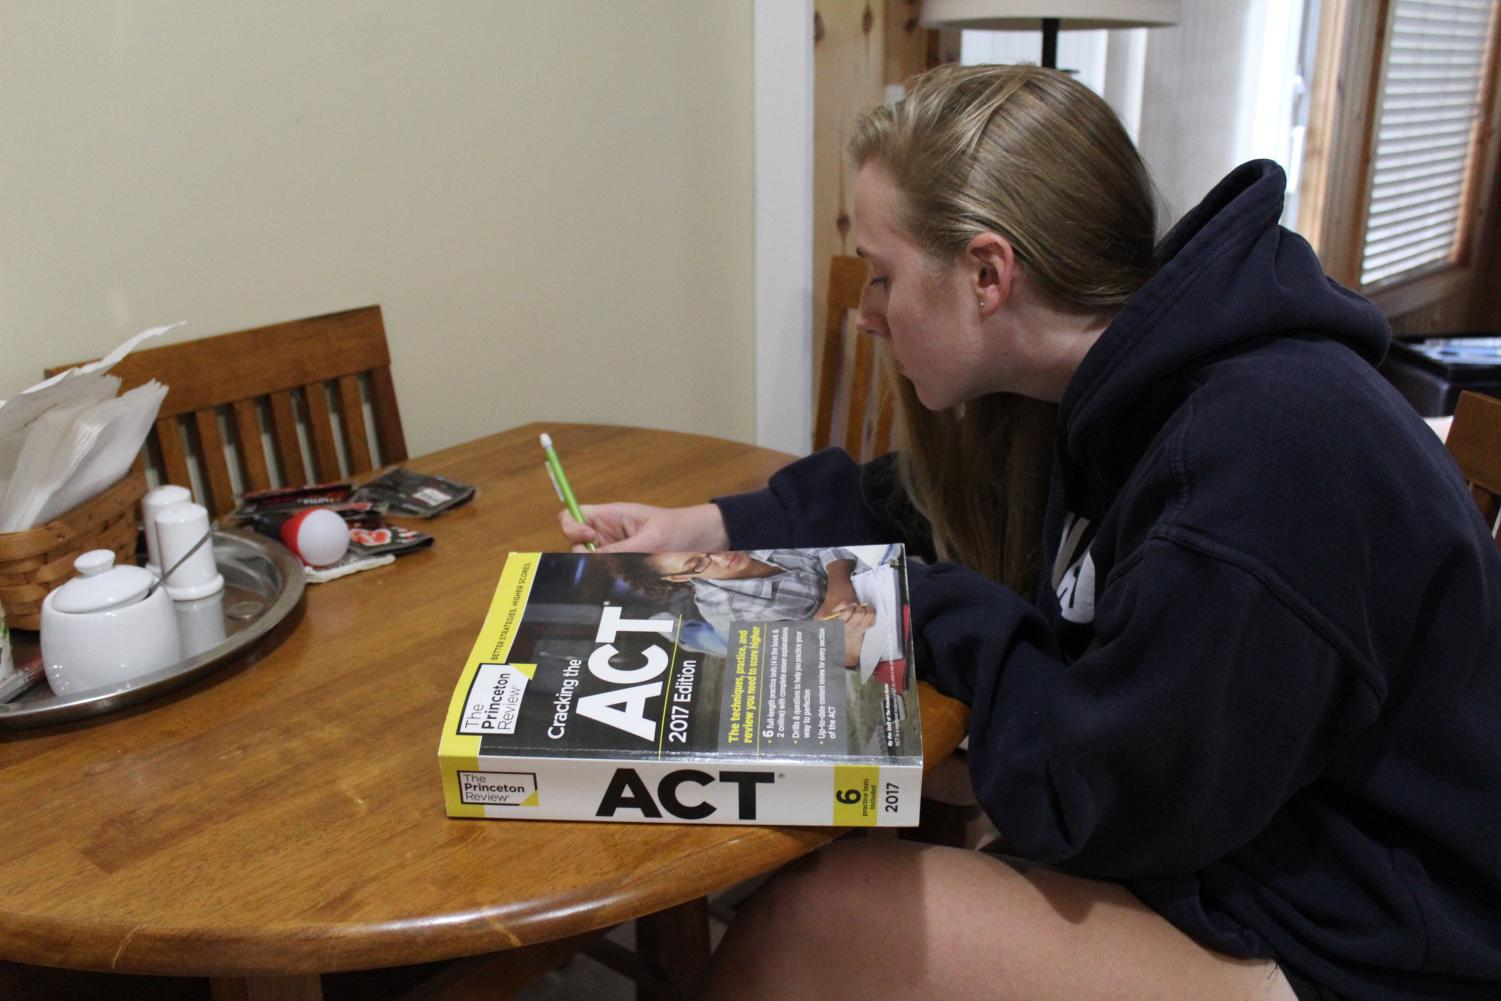 Senior Natalie Aune studies for the writing portion of the ACT. Many colleges recently dropped their ACT/SAT writing section requirement and now accept graded high school essays in its place.